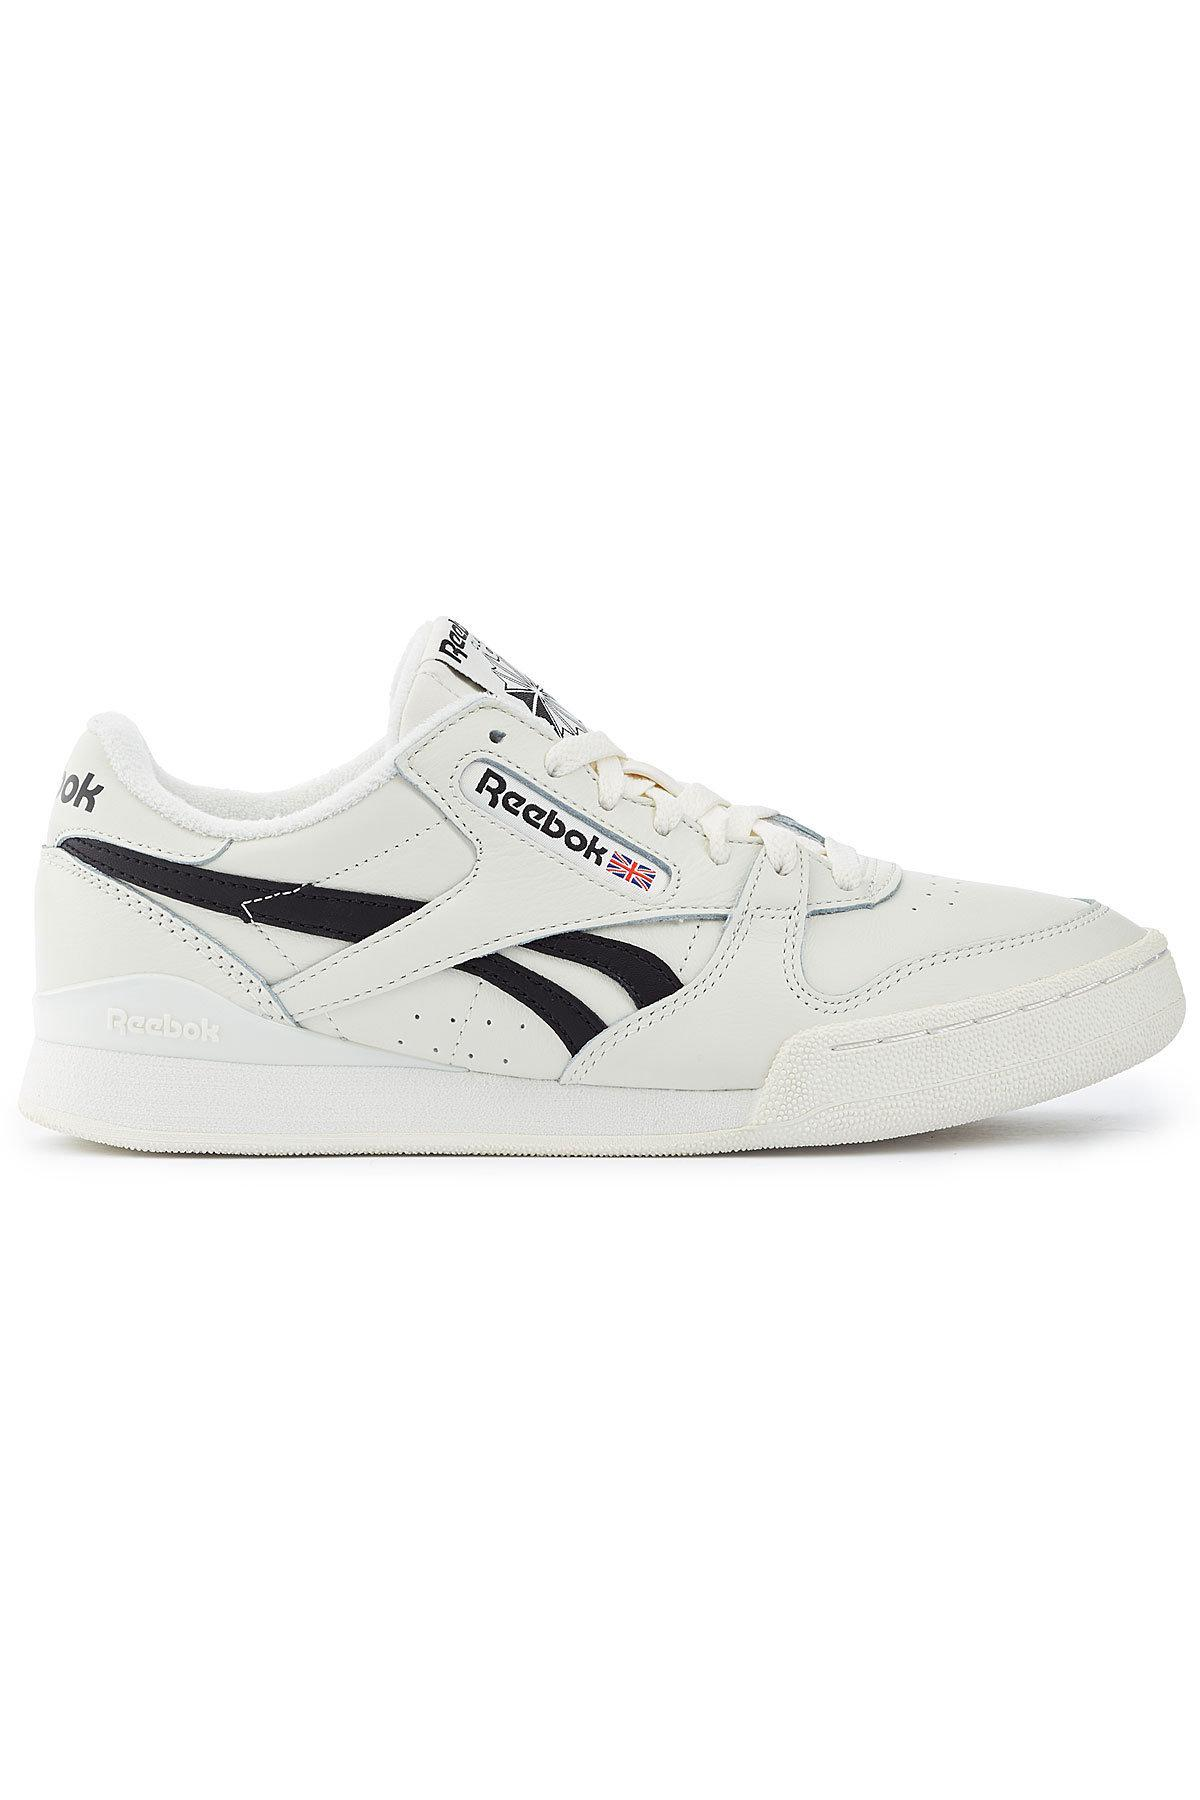 Lyst - Reebok Phase 1 Pro Mu Leather Sneakers for Men cefab63c8